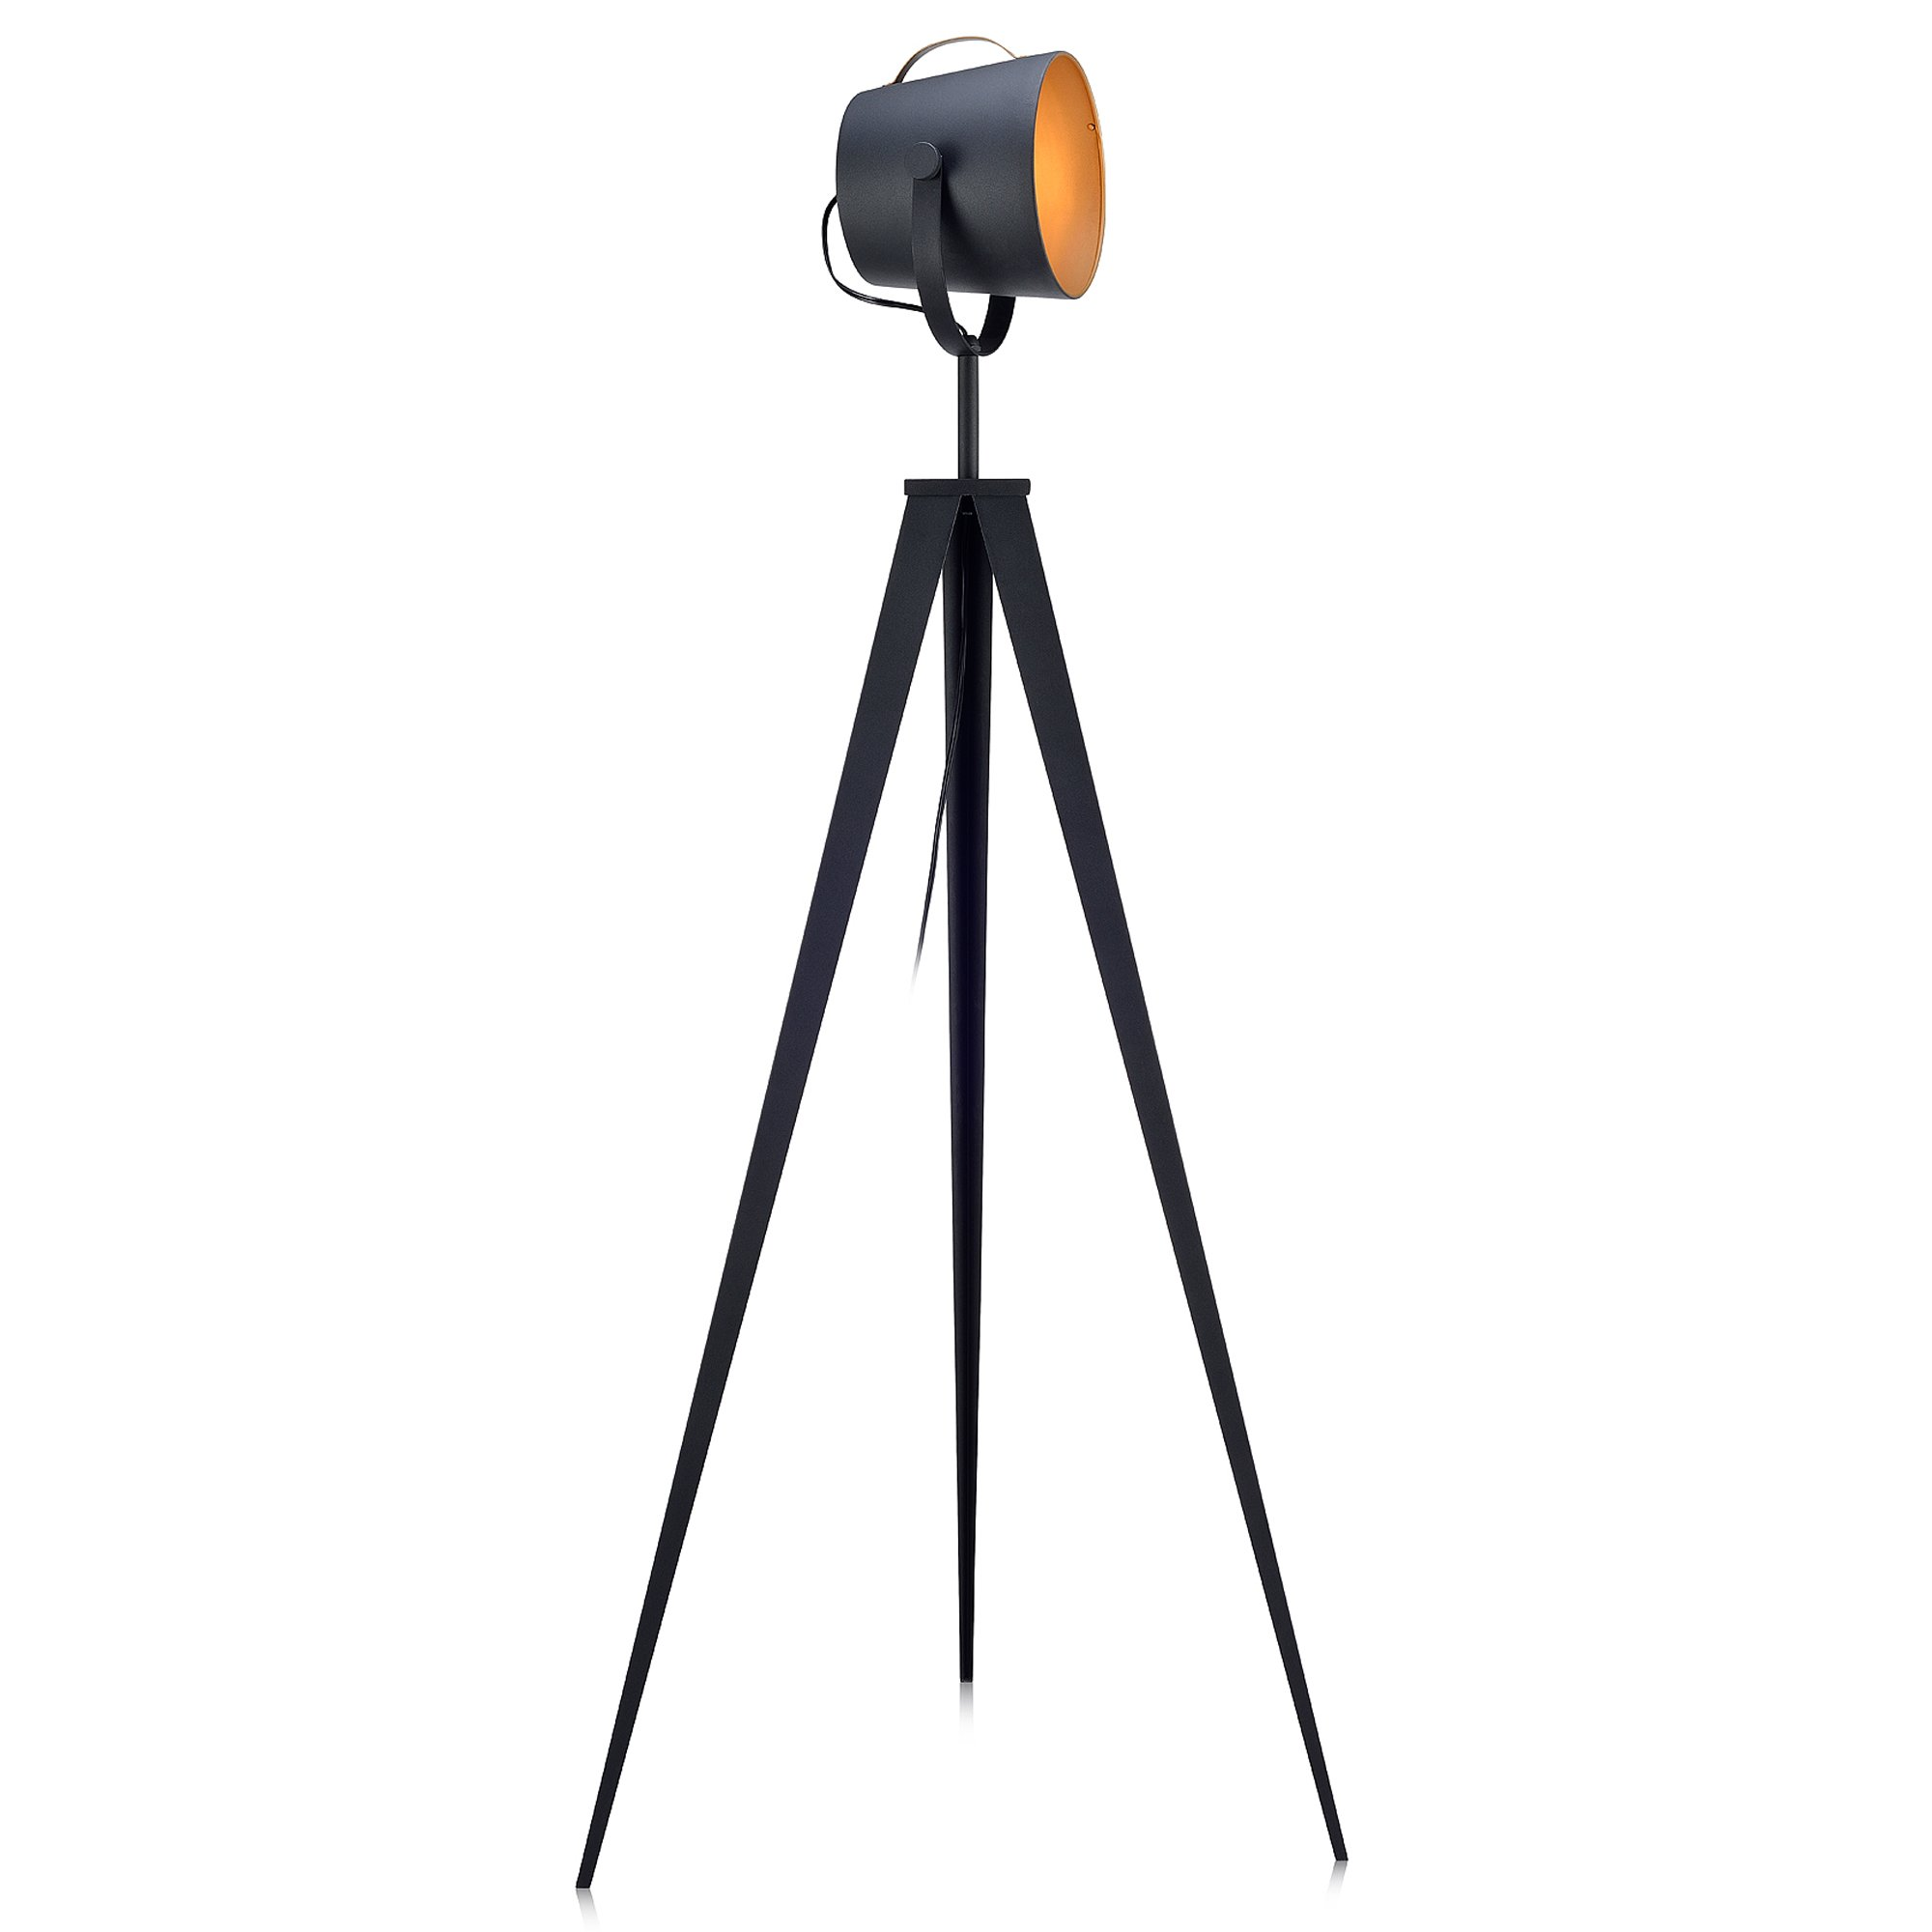 Versanora VN-L00020 Industrial Tripod Floor Lamps, Black/Gold by Versanora